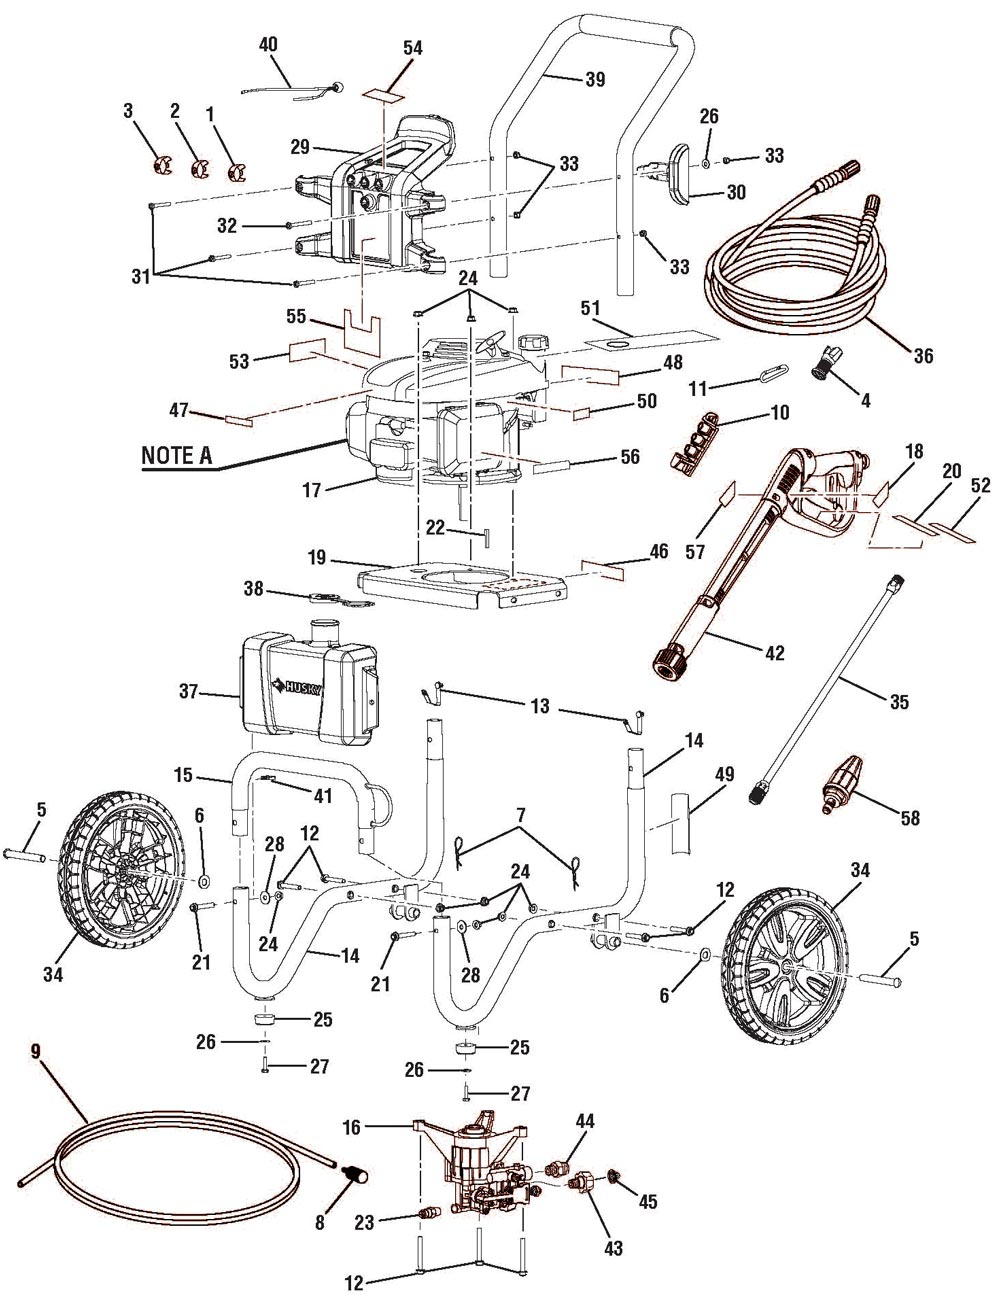 HU80432, HU80432A   Pressure Washer Parts Schematic